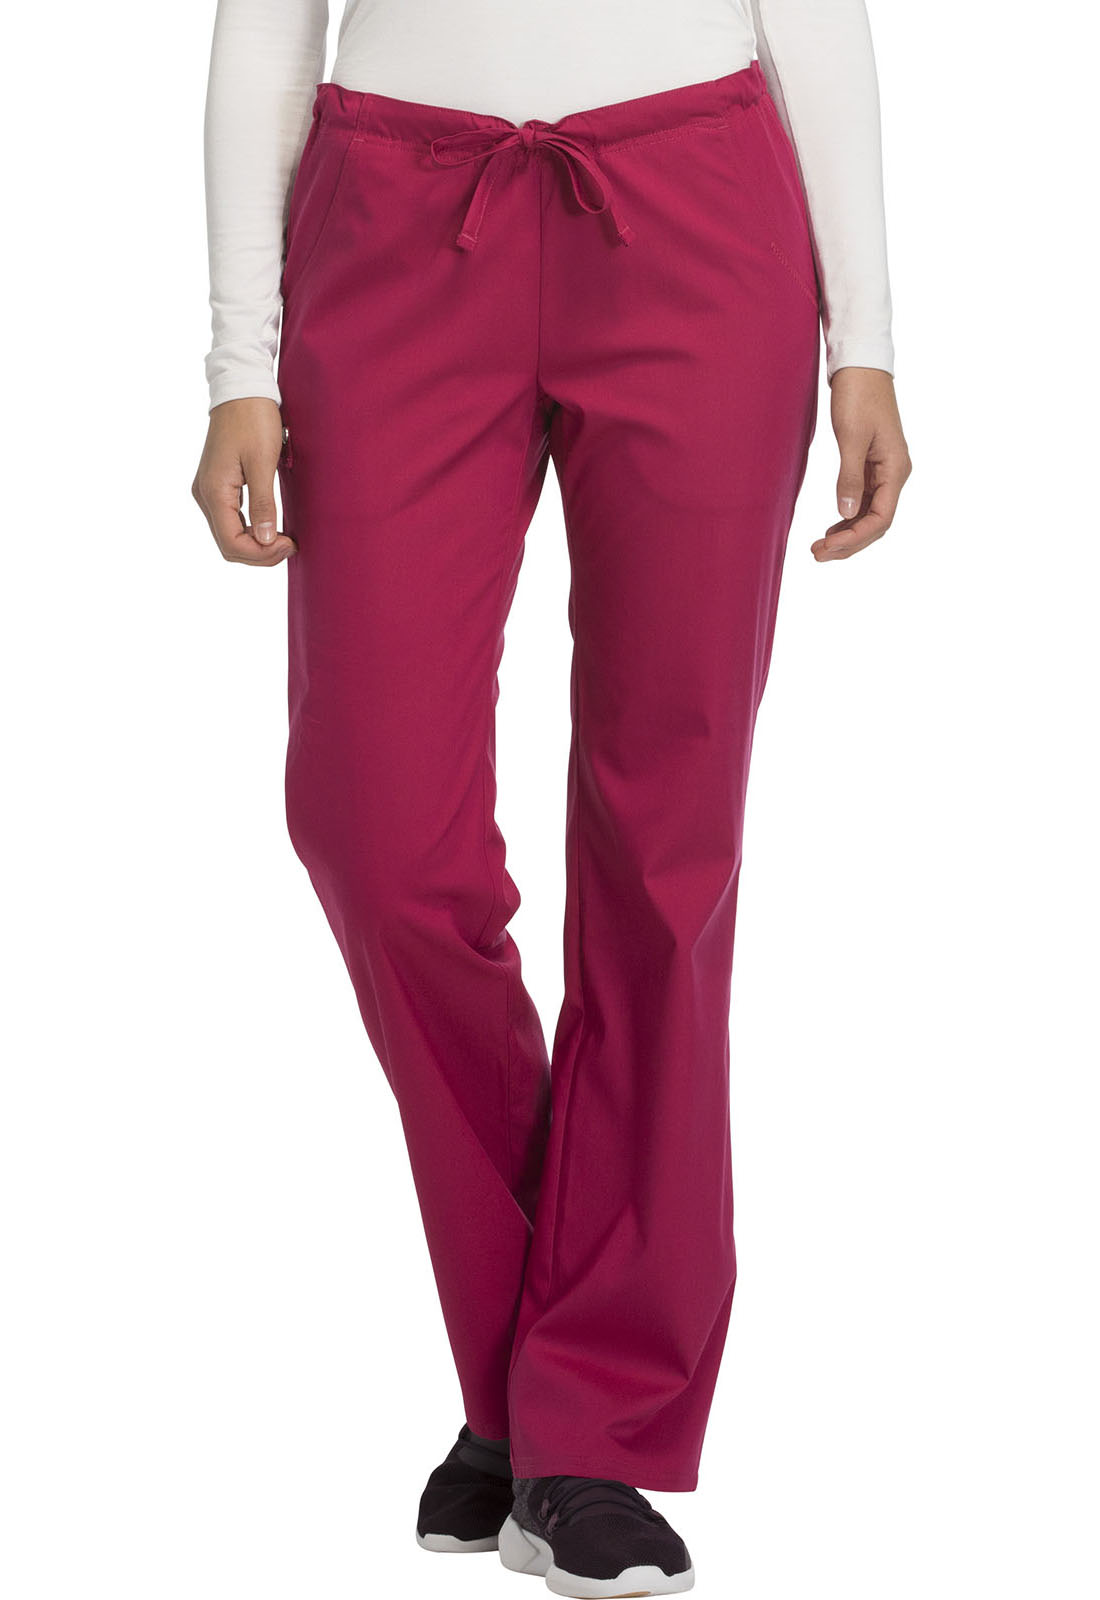 4d52df242e7 Cherokee Luxe Low Rise Straight Leg Drawstring Pant 1066P-UPBT from ...